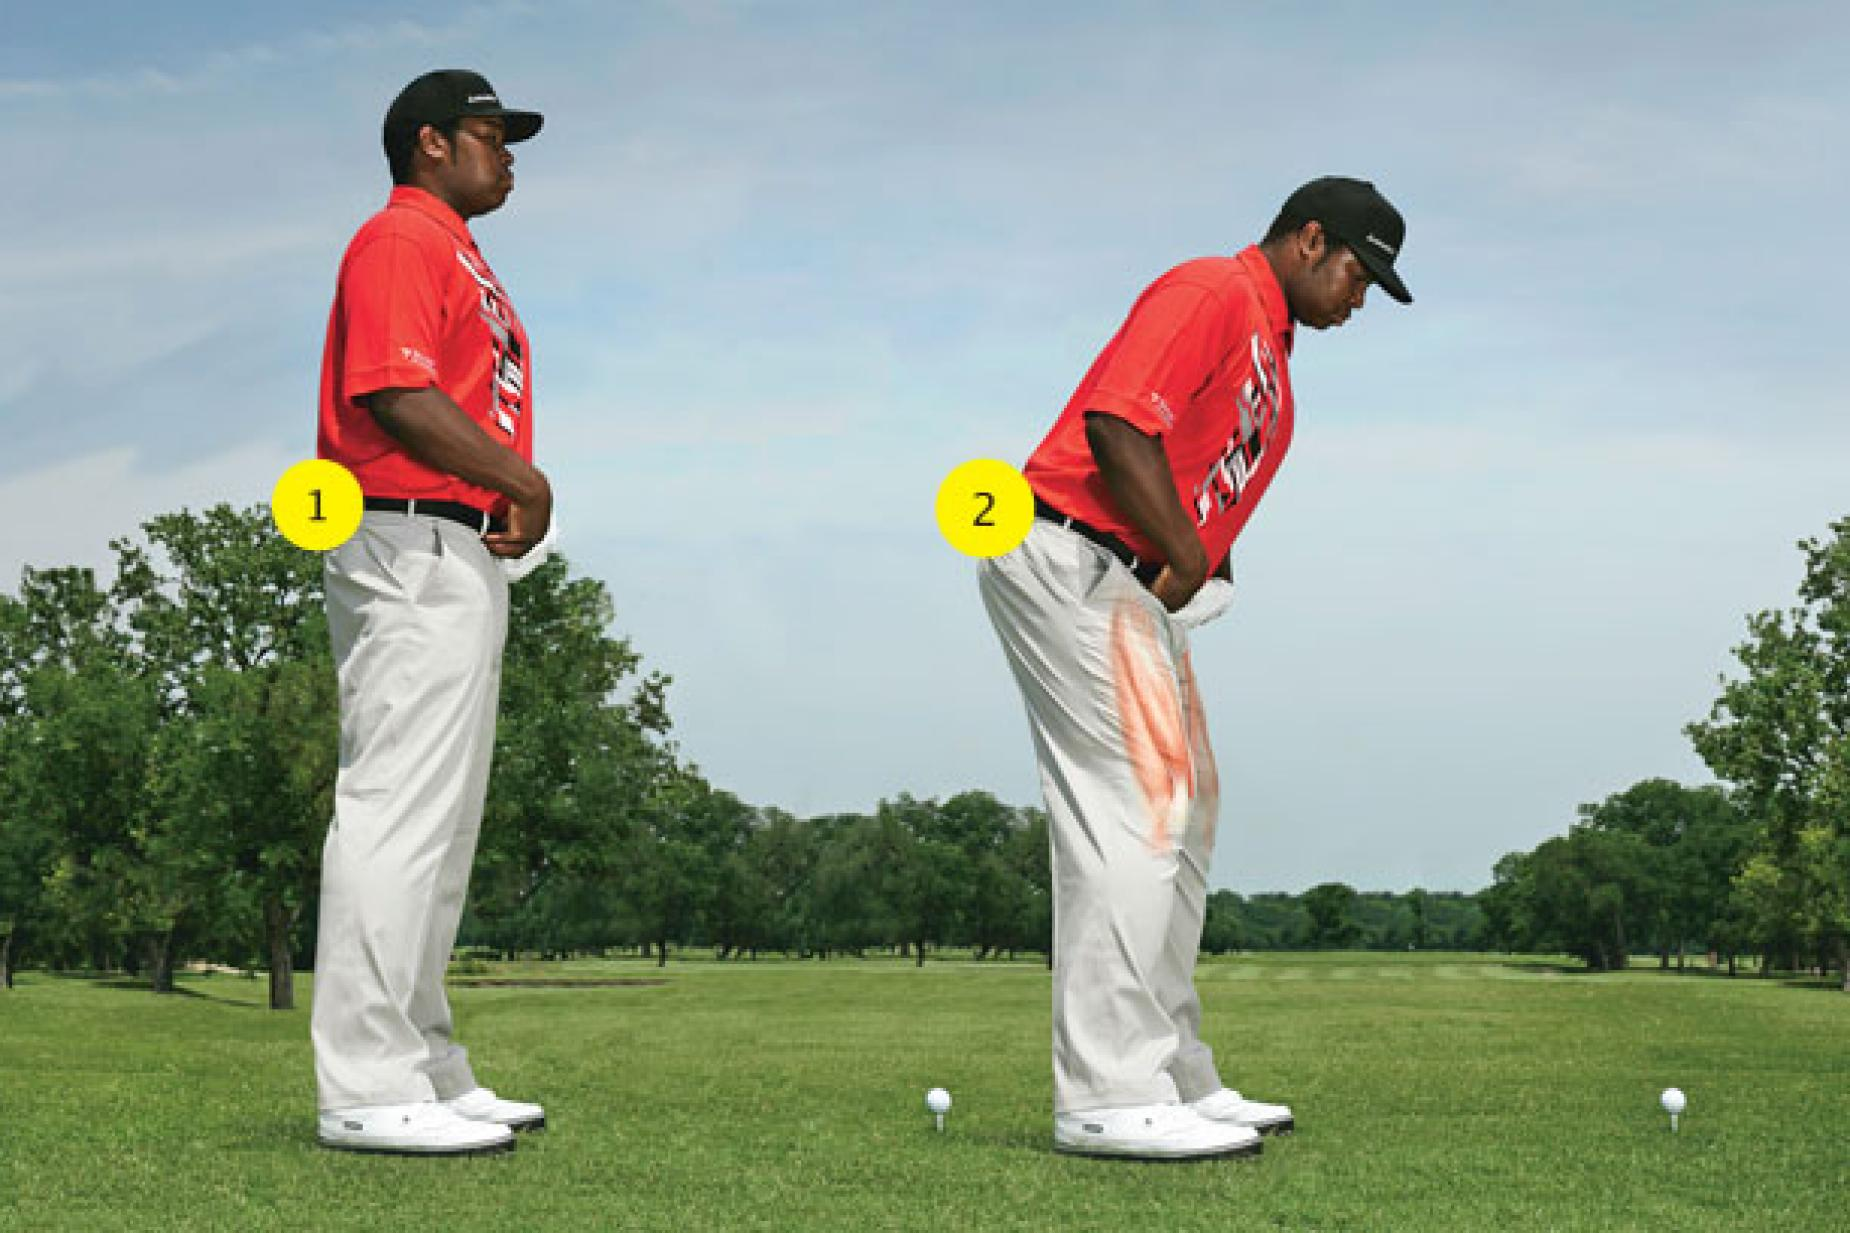 instruction-2012-06-inar01_carlos_brown_posture.jpg